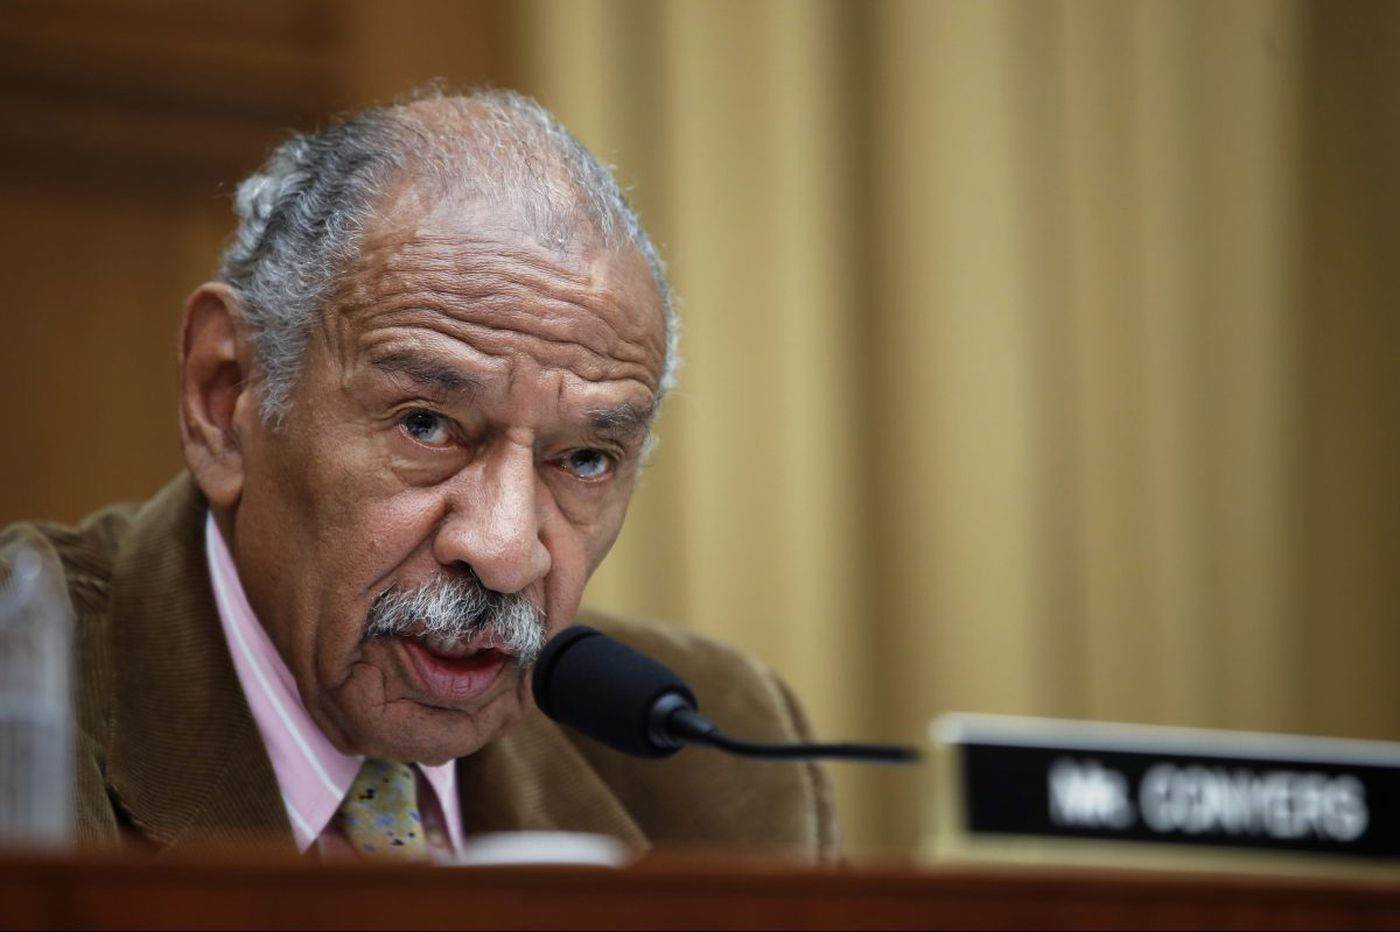 Ethics lawyer says Conyers mistreated her during her years on Capitol Hill